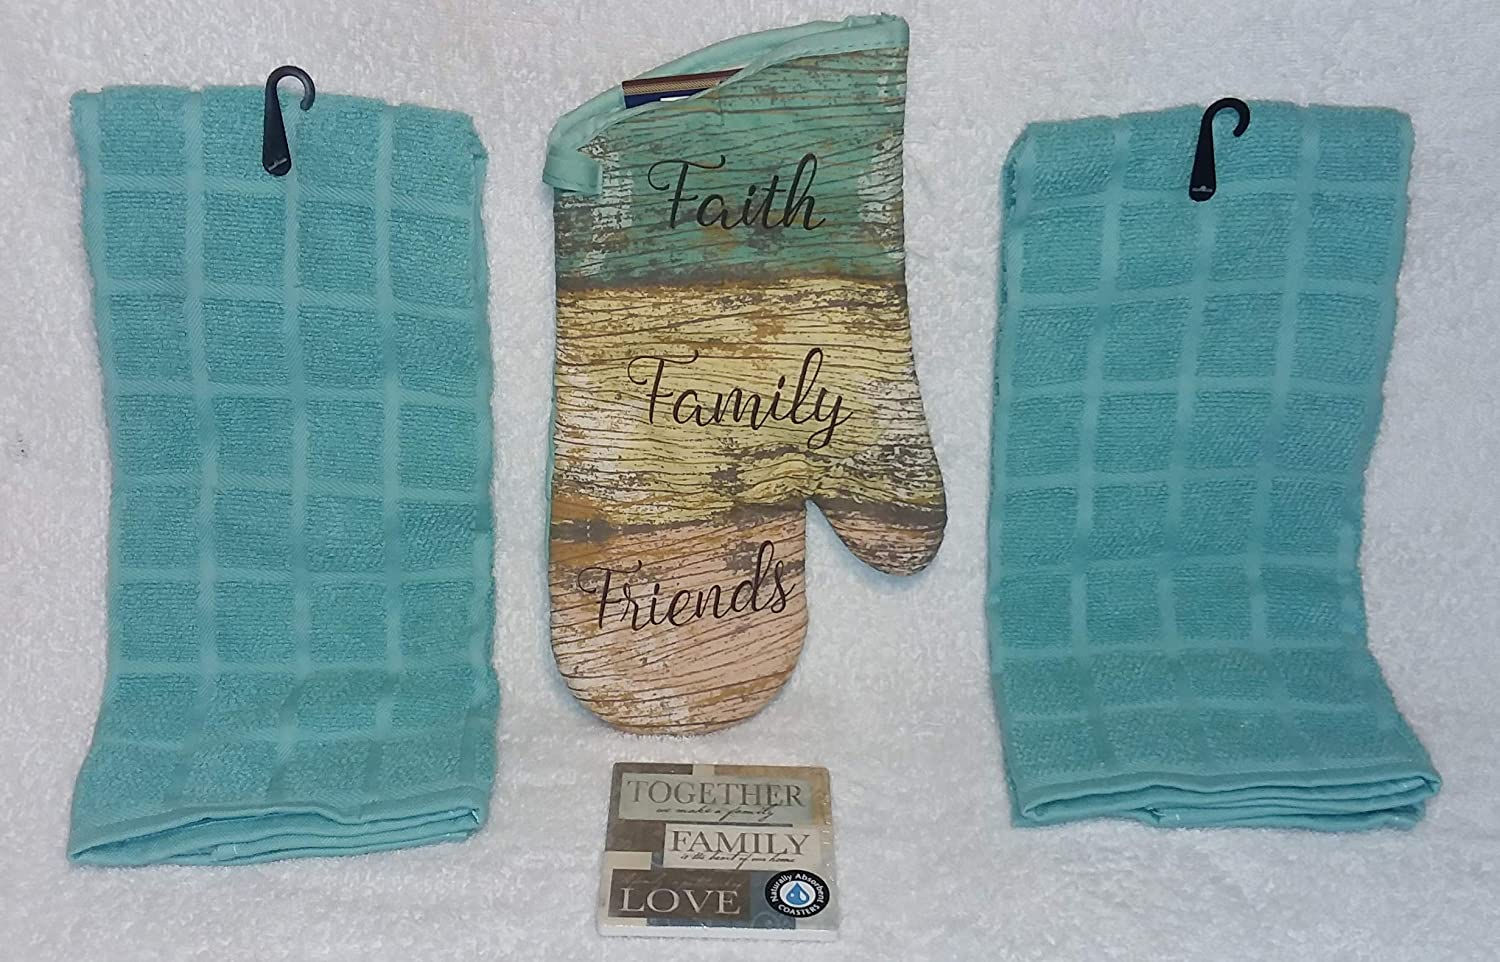 Sunroom Creations 3 Piece Beachy Aqua Kitchen Towesl and Oven Mitt Set with Matching Coaster